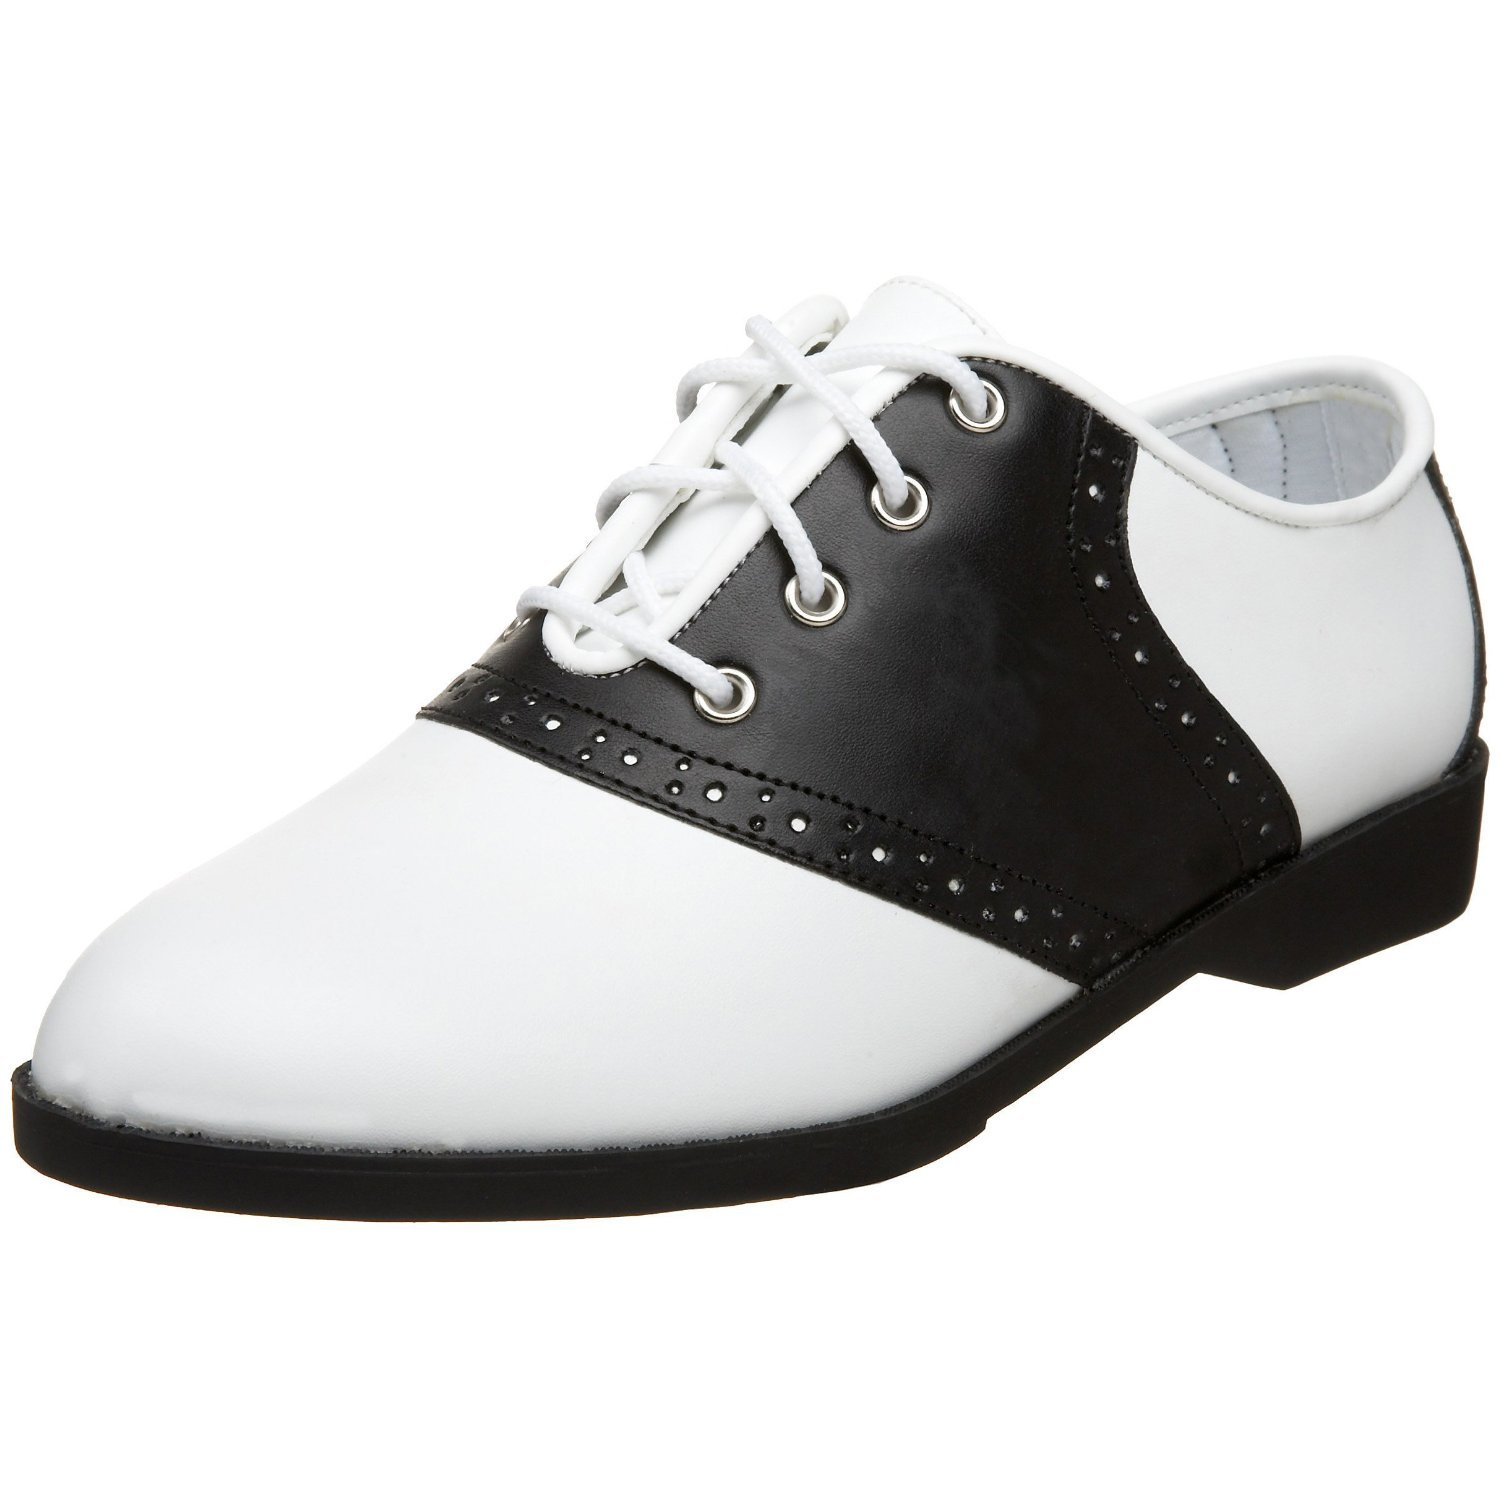 Saddle-50 (10) White/Black Saddle Shoes